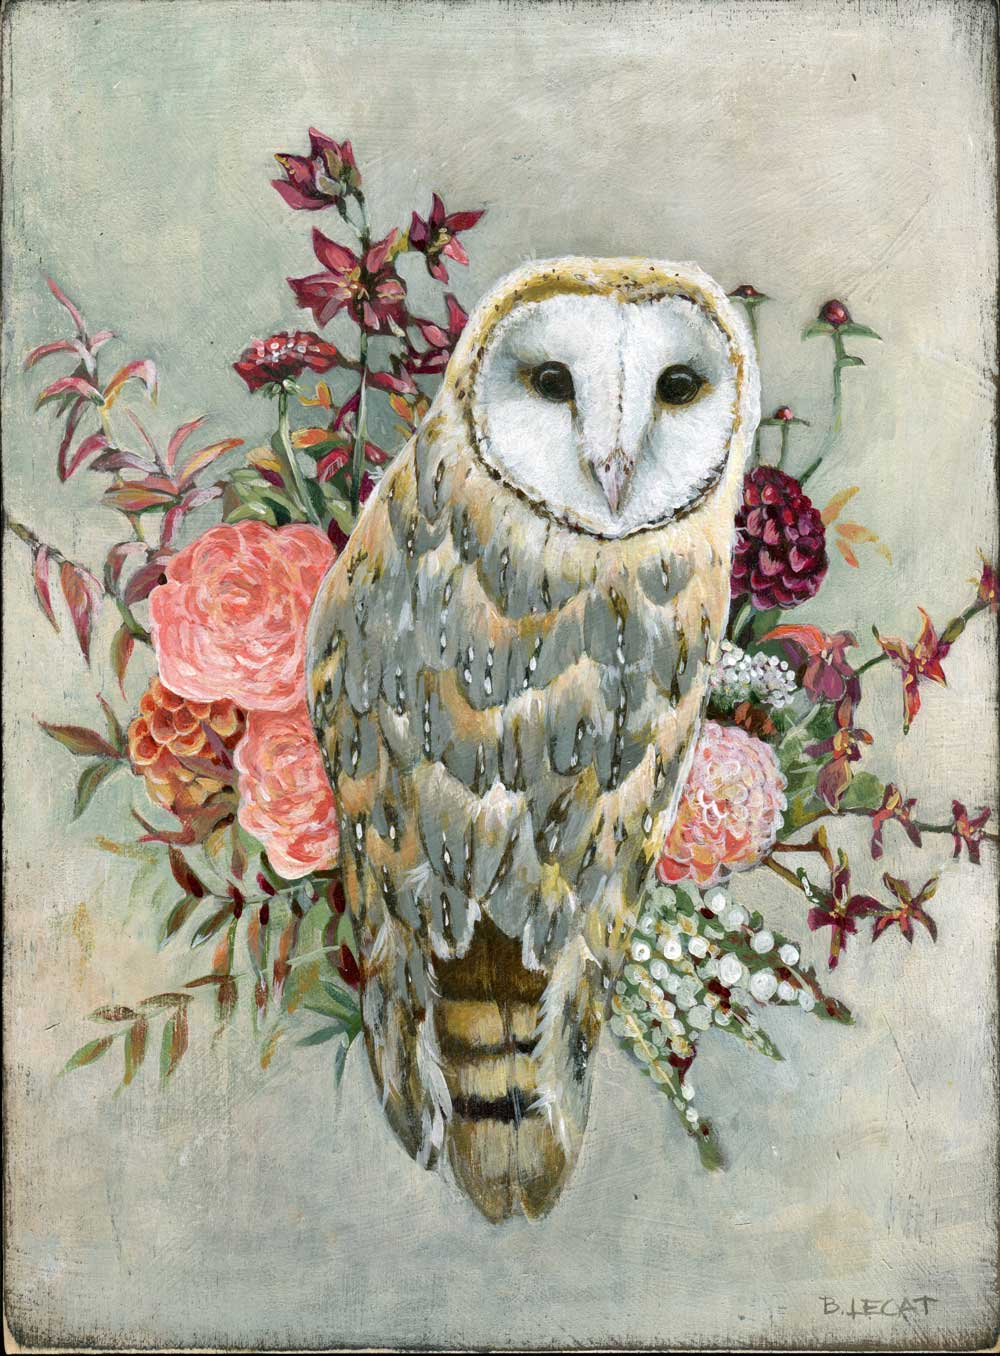 This barn owl print features rich colors and modern farmhouse style and comes ready to hang or give as a gift. Learn more at https://www.bonnielecatdesigns.com